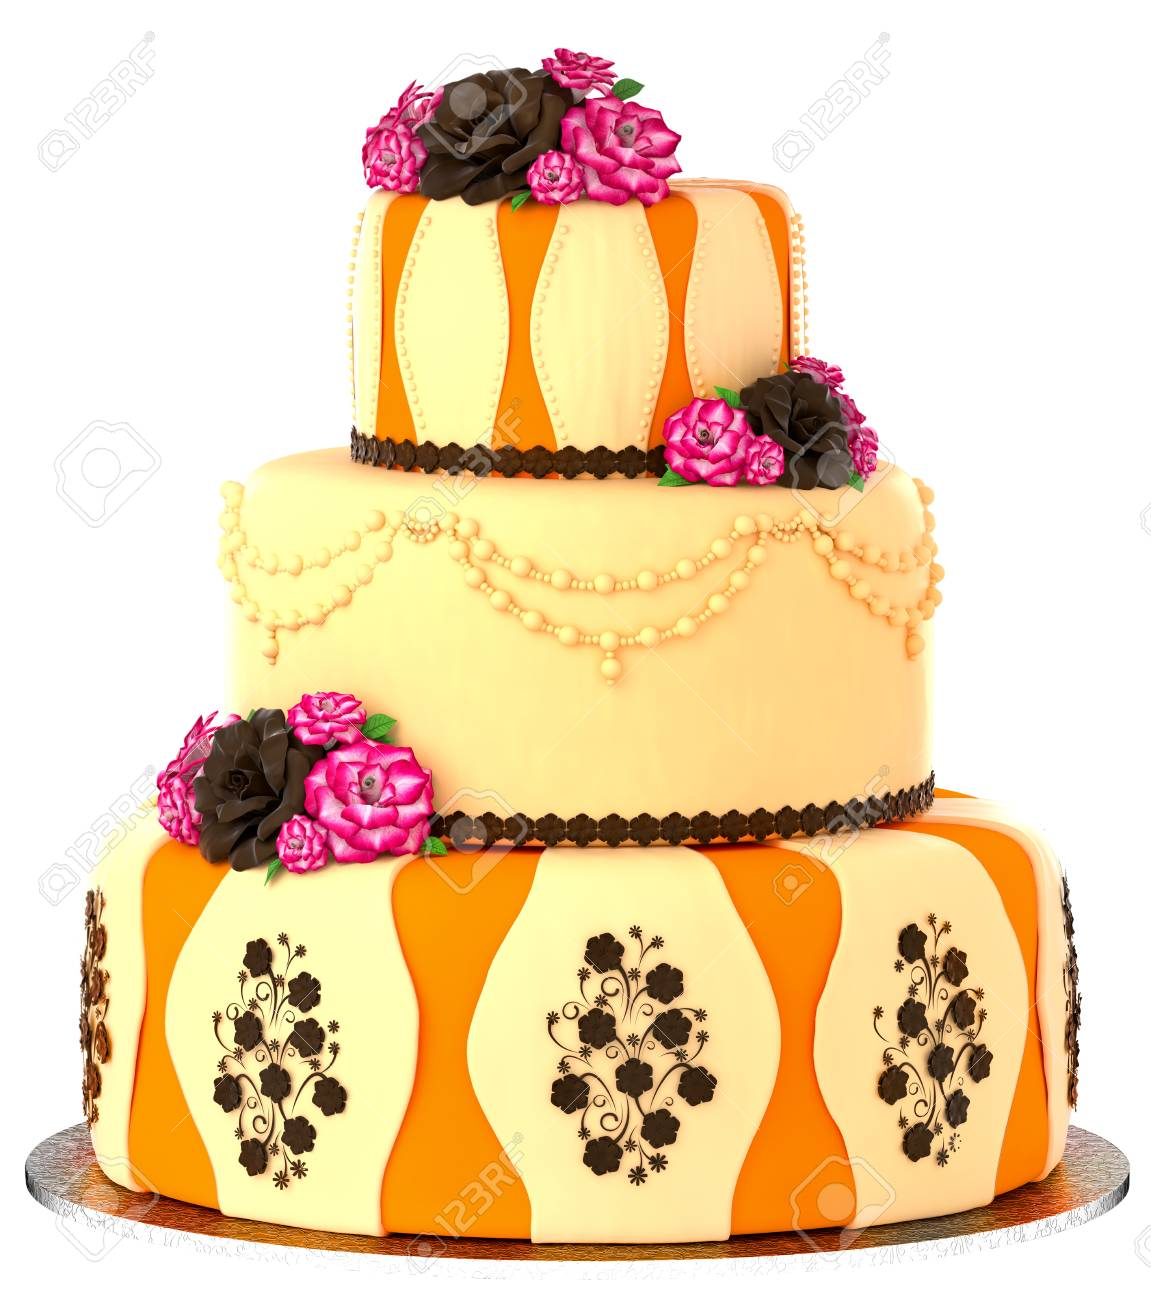 Three Tier Cake With 3 Layer Decorated Chocolate Rose And Flowers Birthday Or Wedding Tired Pie Orange Yellow Slice For Event Holidays On White